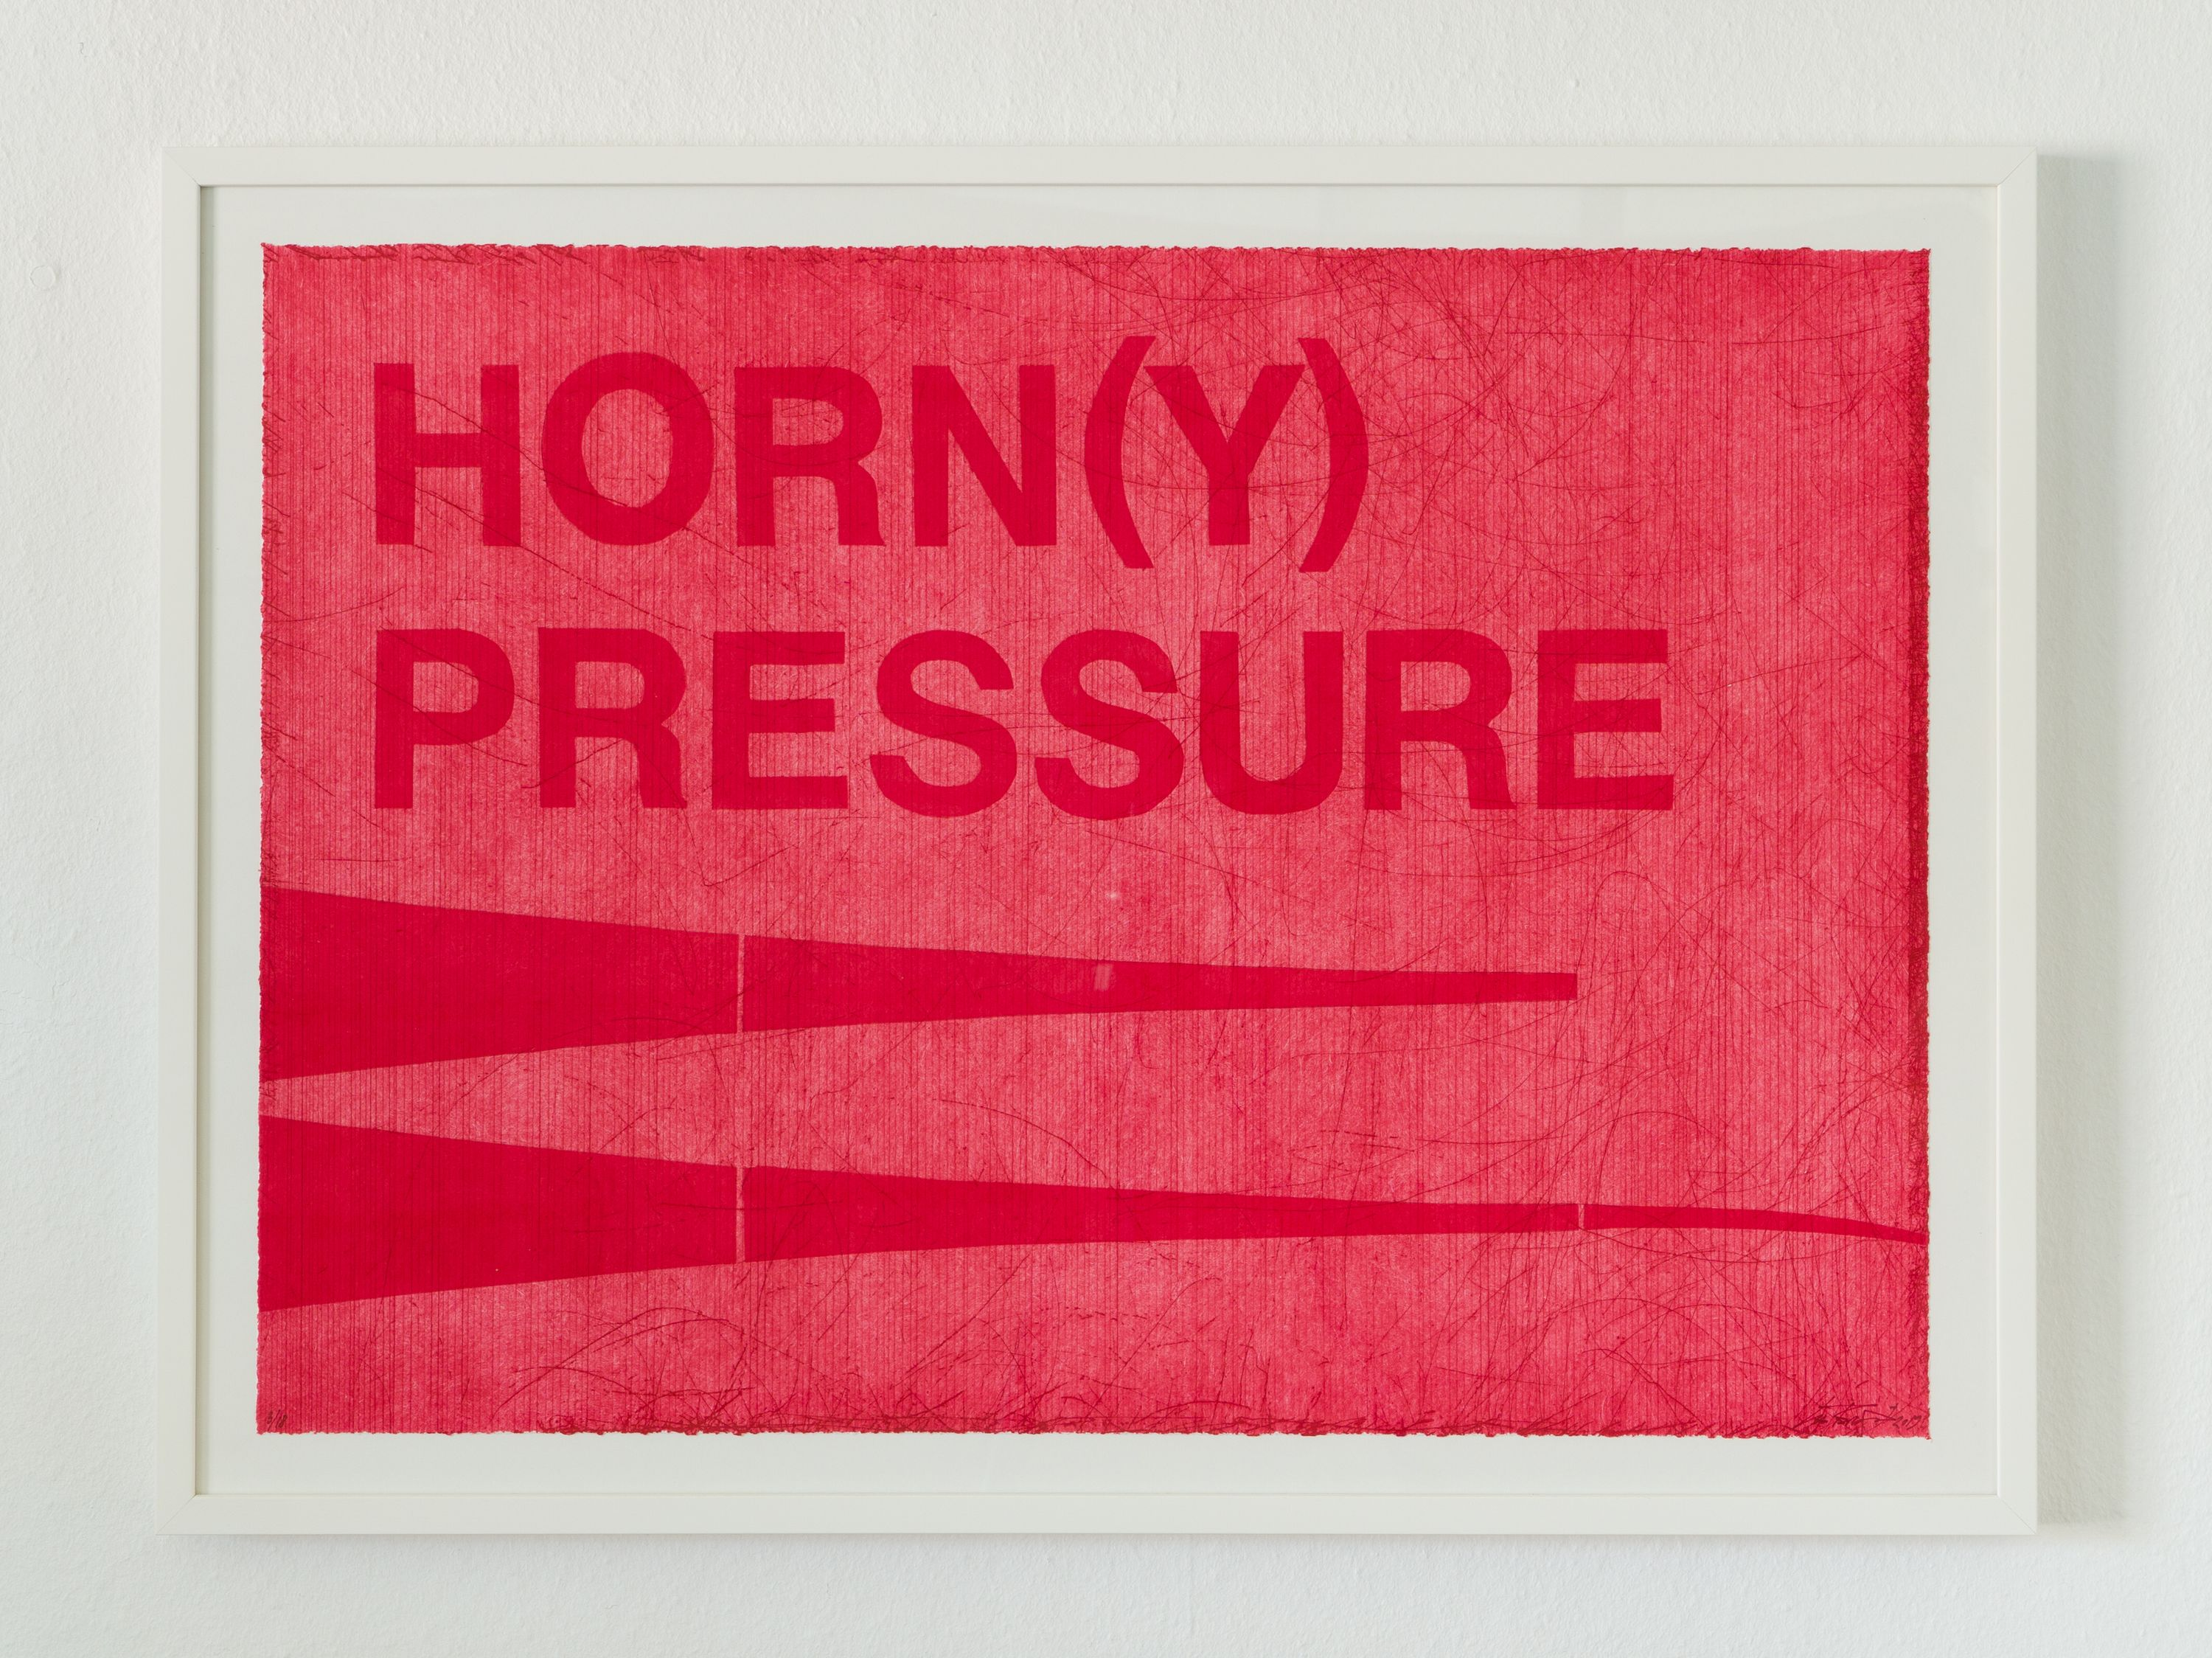 HORN(Y) PRESSURE by Lea Porsager, ADL